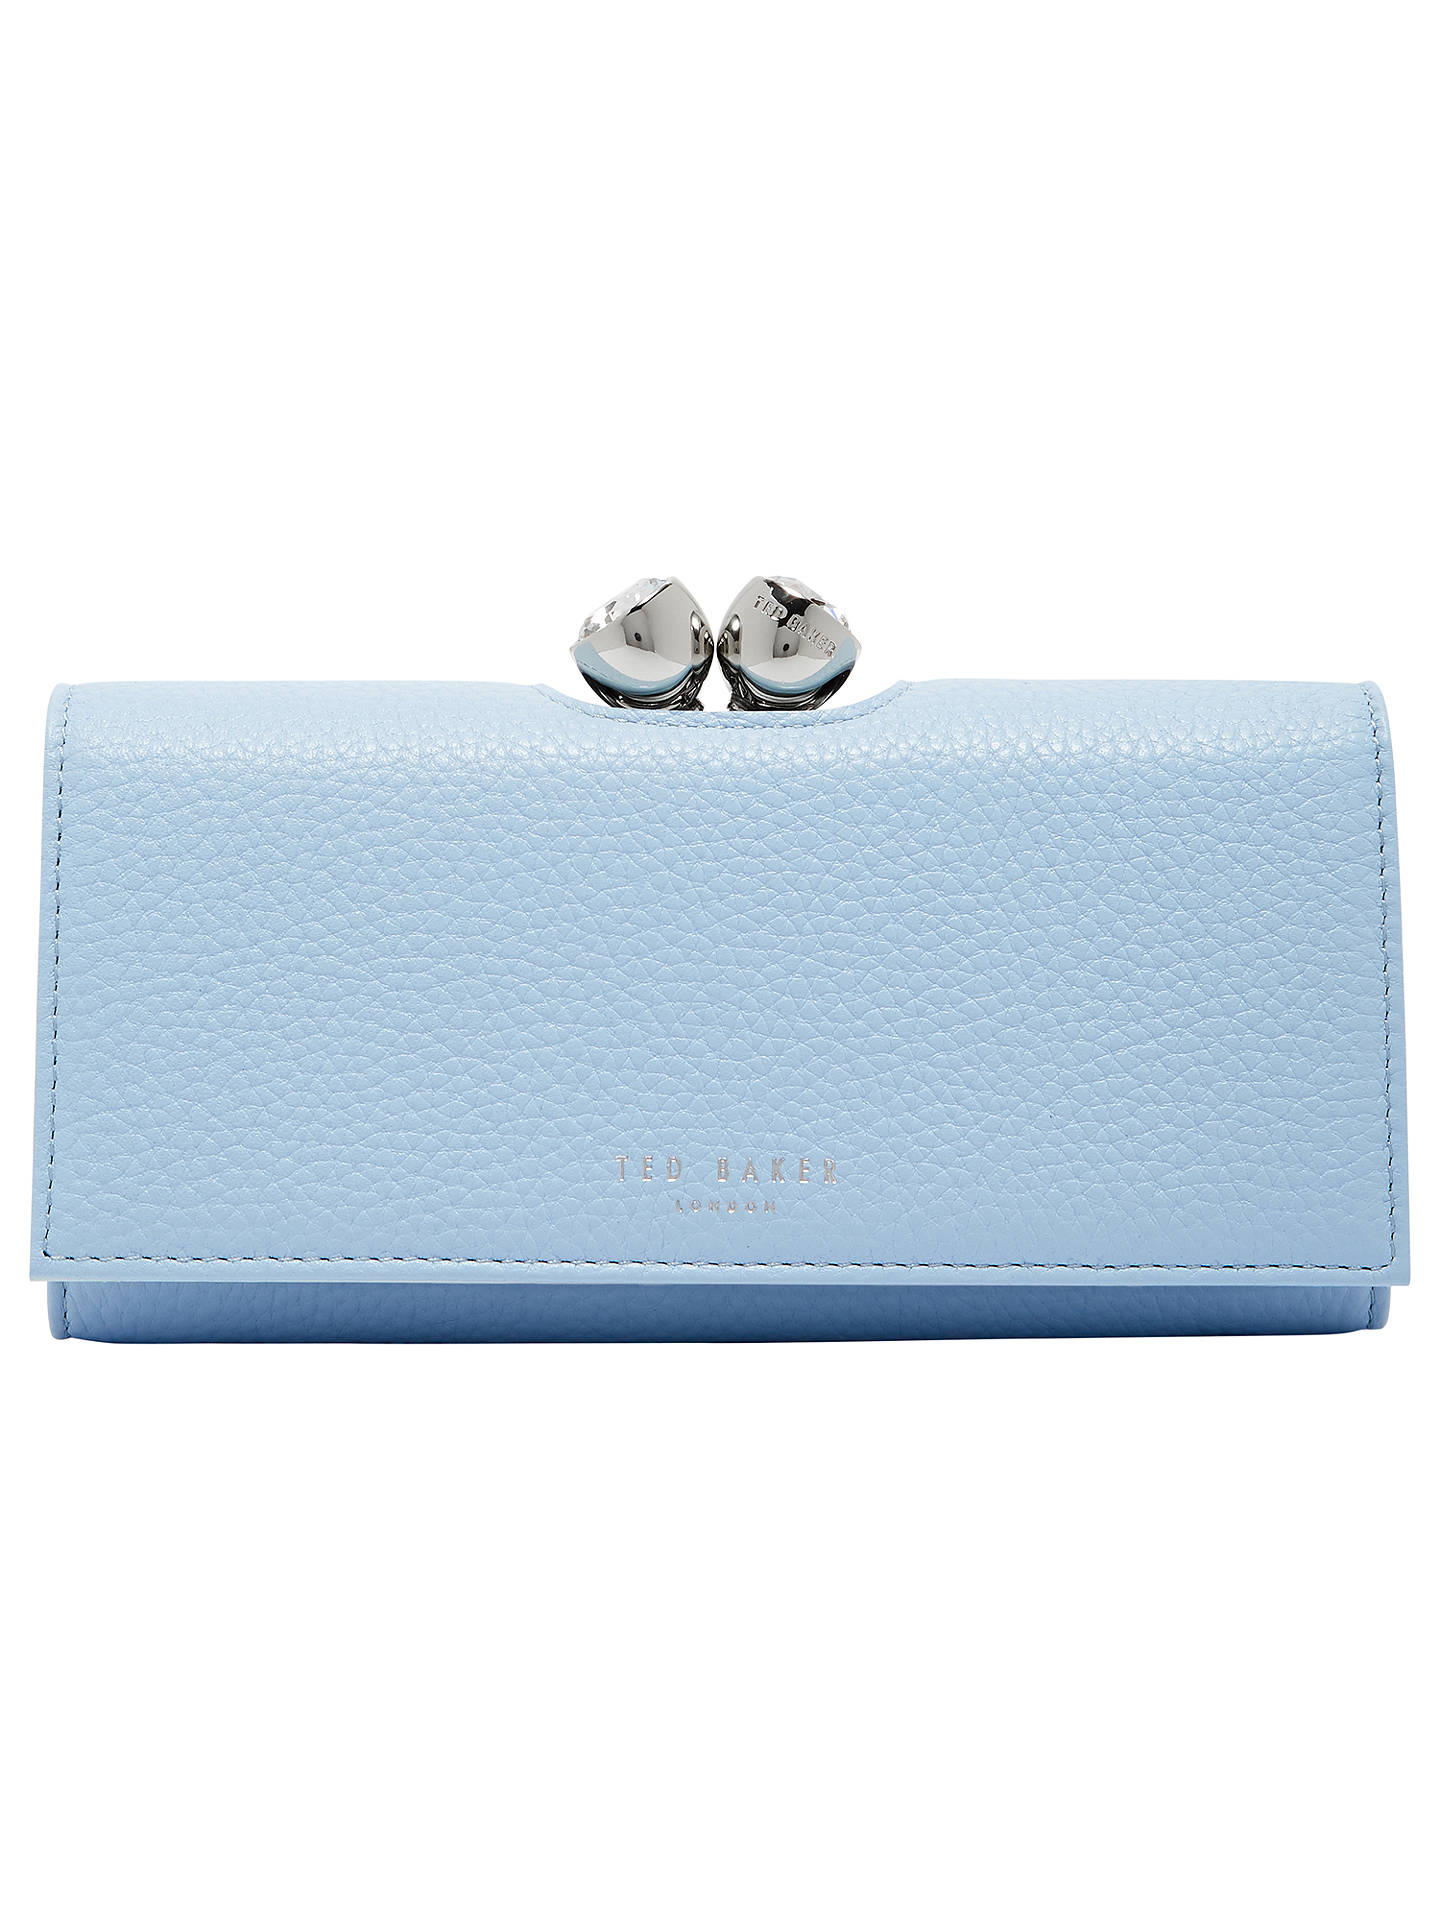 9be6f6c5a0 Buy Ted Baker Muscovy Leather Matinee Purse, Pale Blue Online at  johnlewis.com ...